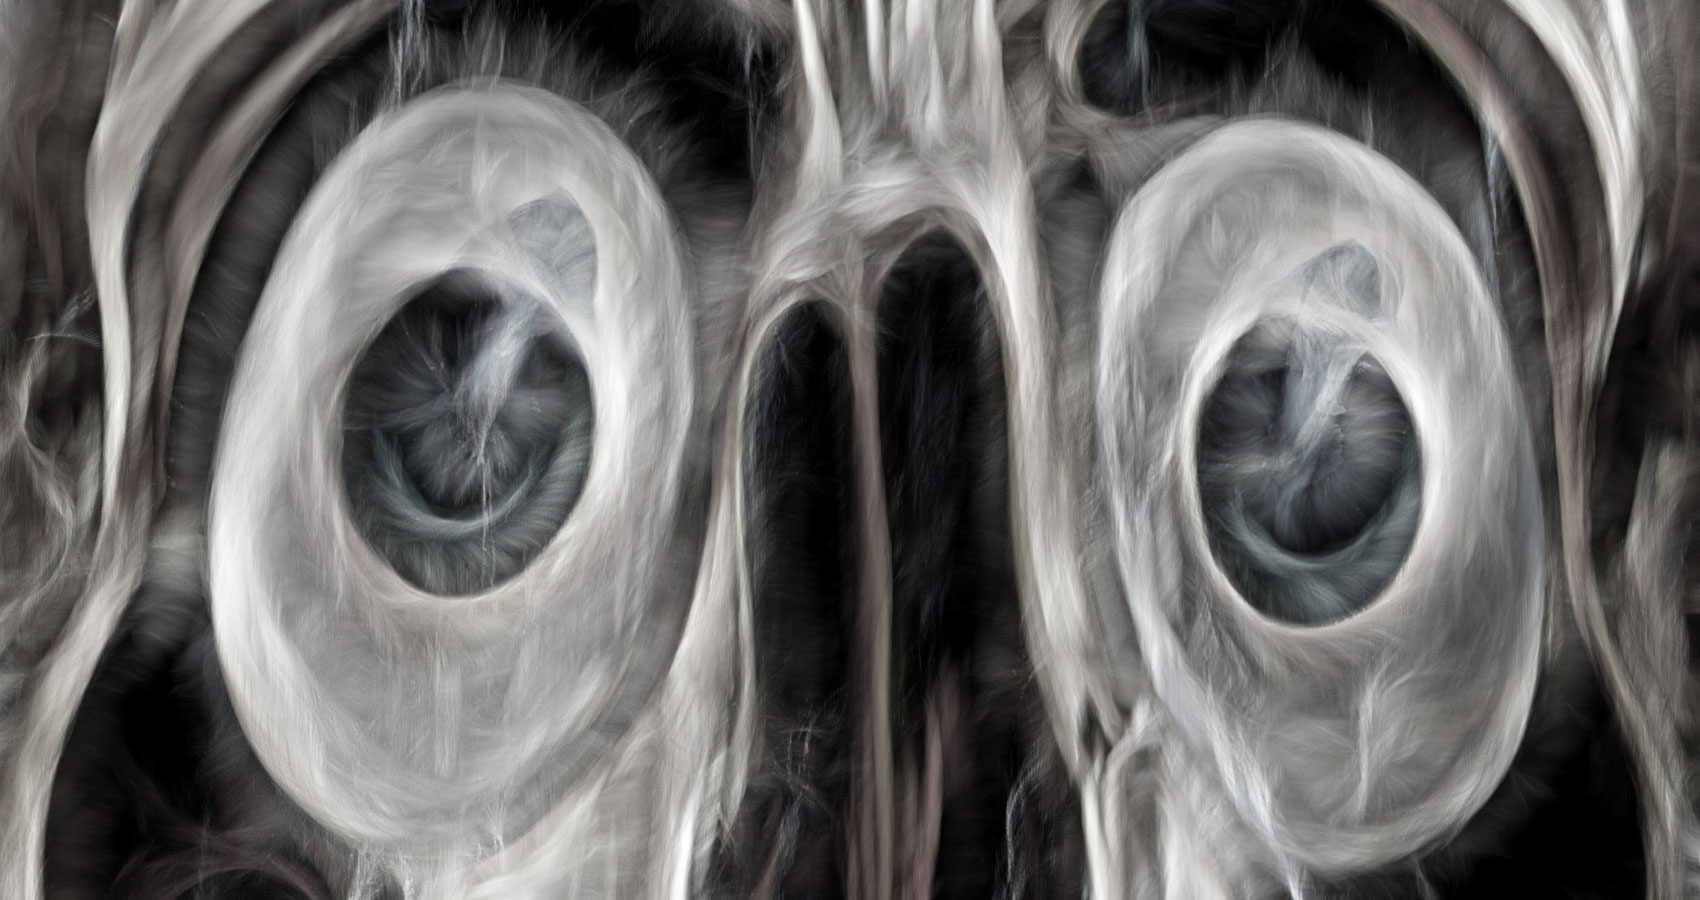 A Ghost Under The Bed written by Dimitris Bonovas at Spillwords.com